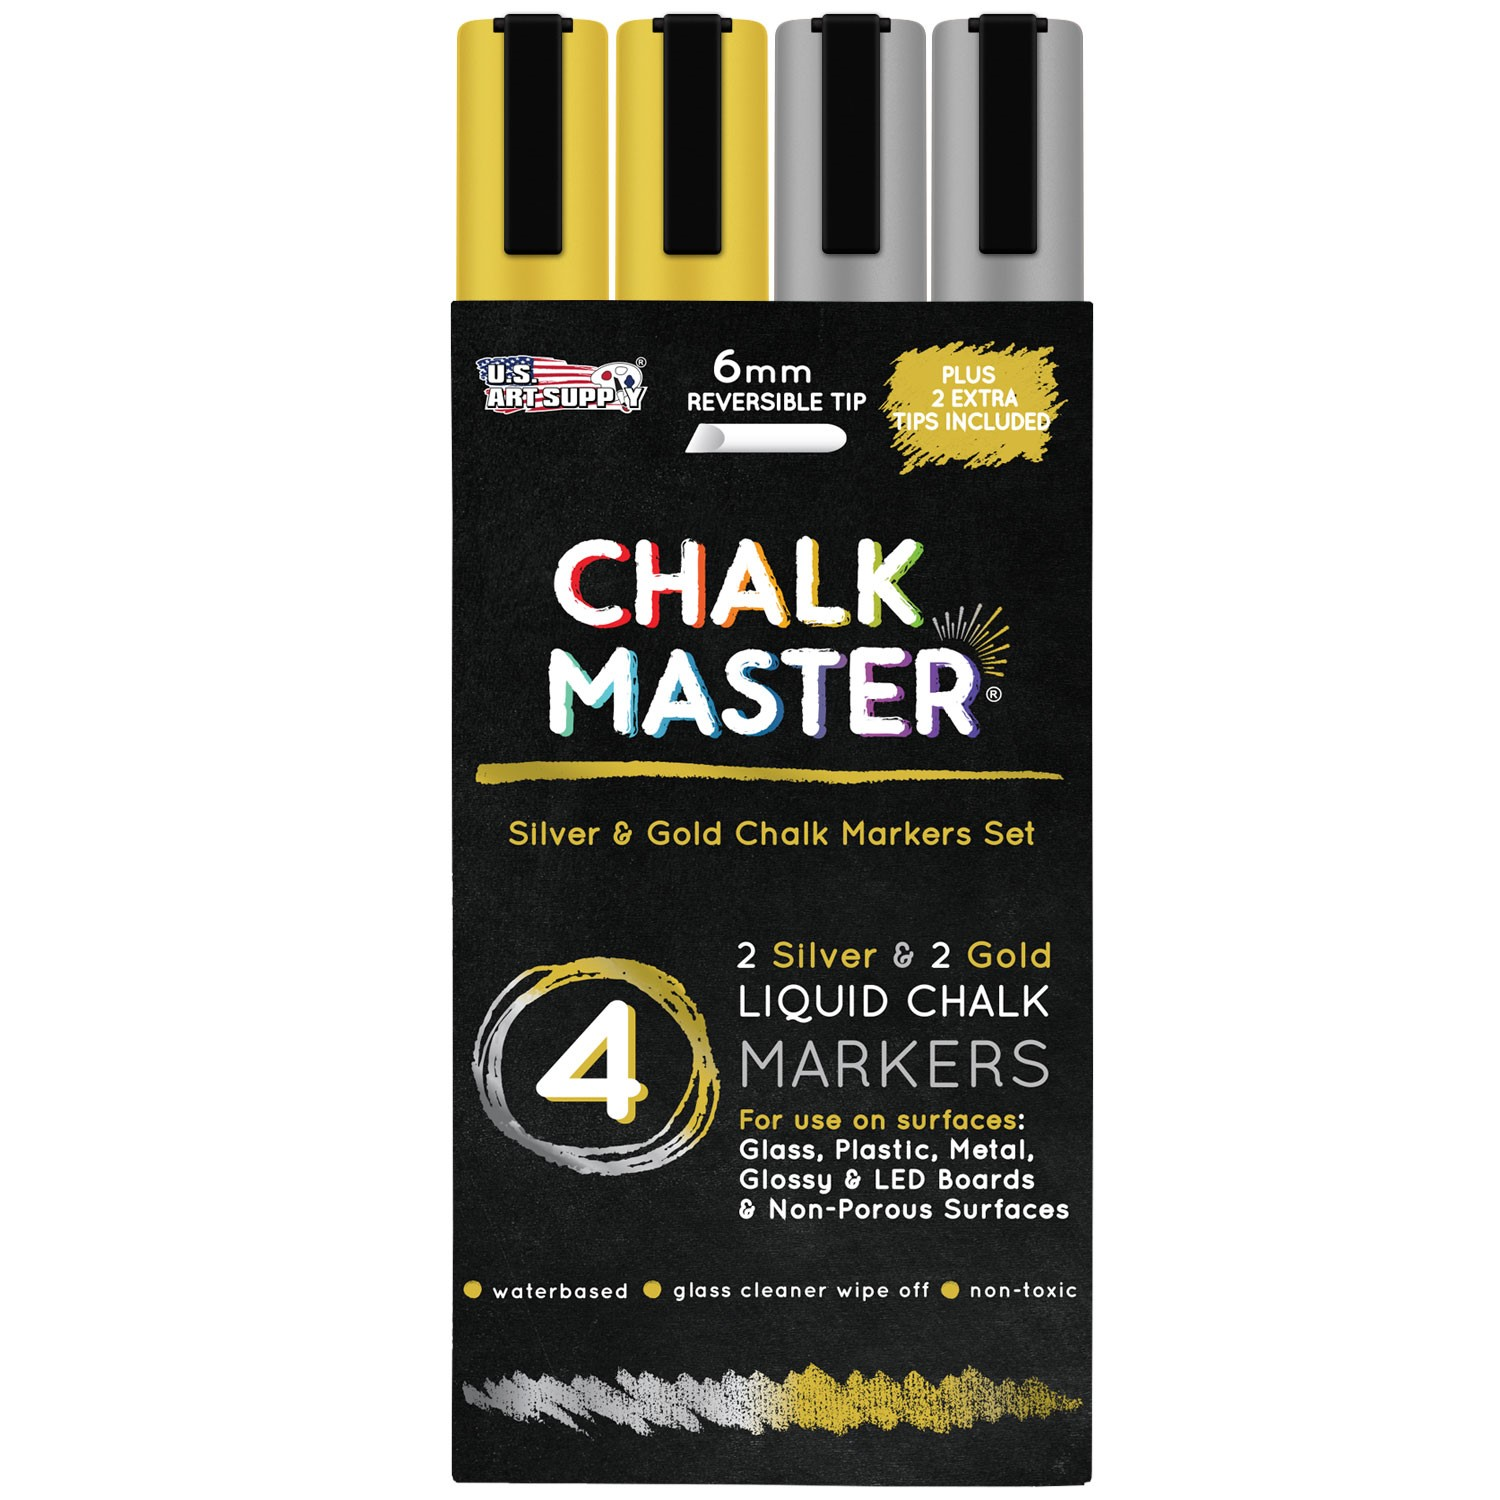 Chalkmaster 2 Gold & 2 Silver Colored 6mm Liquid Chalk Markers, Reversible Tips